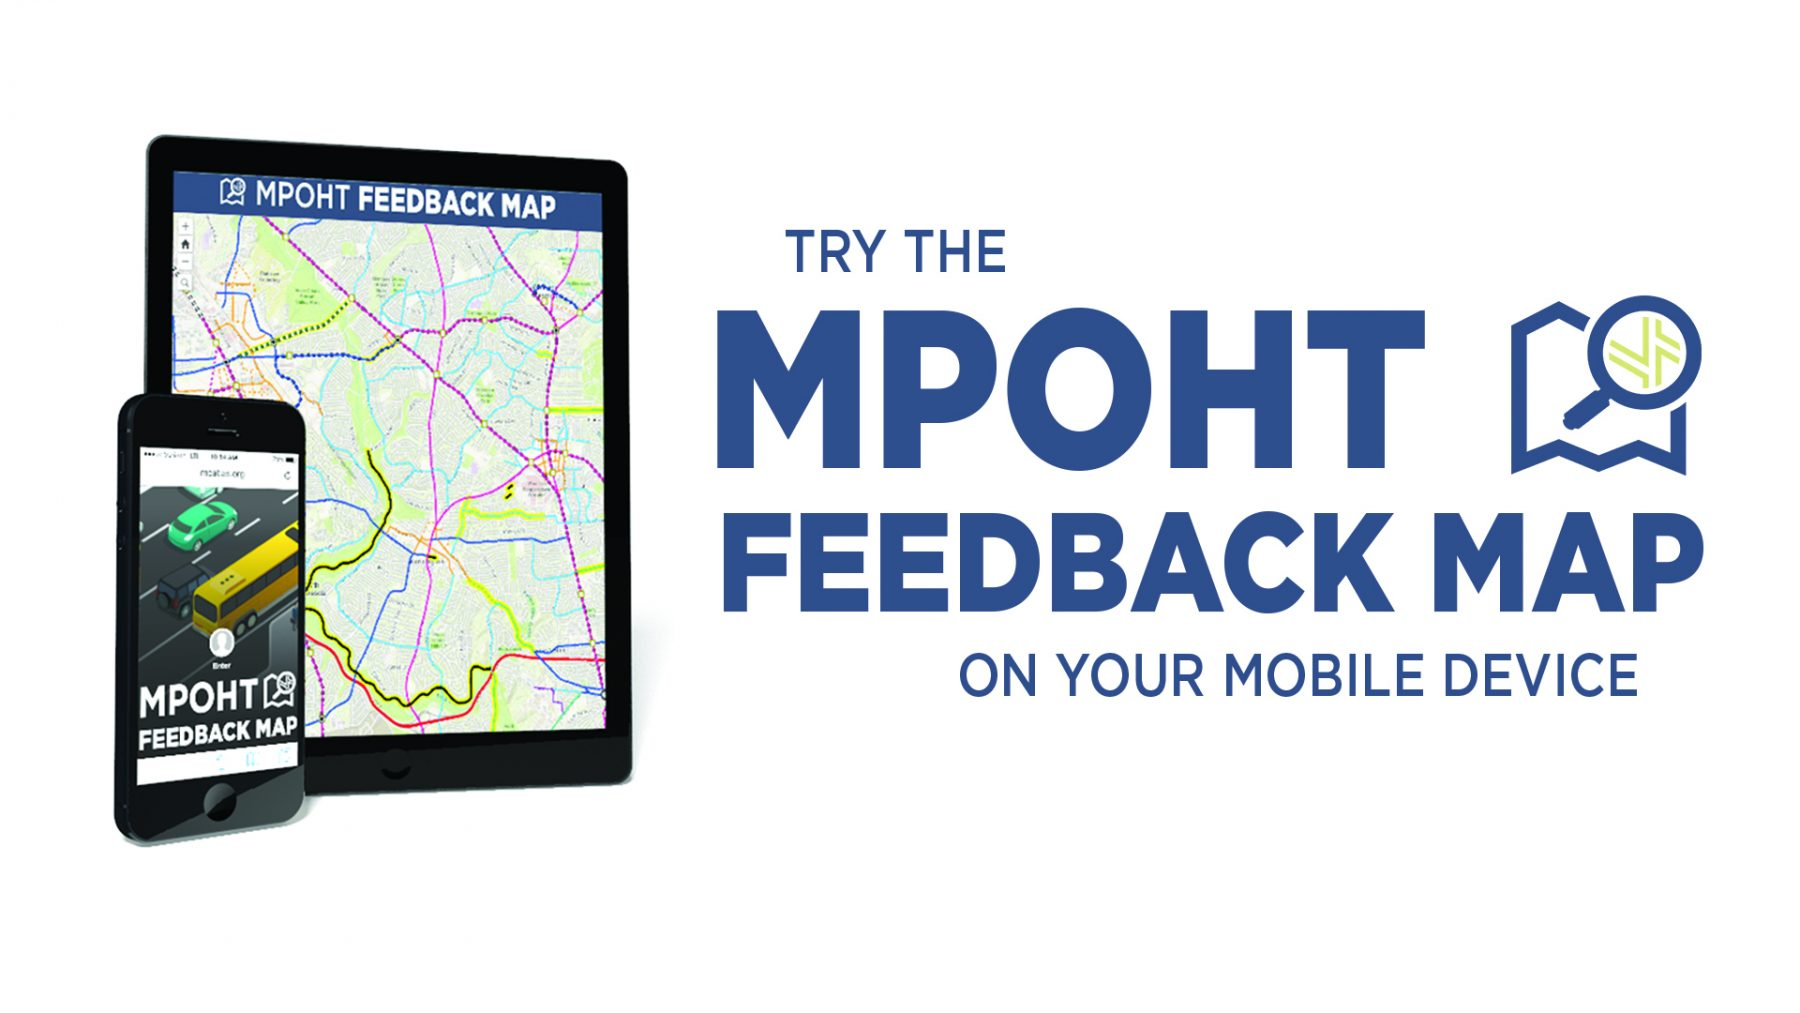 Outreach & MPOHT Feedback Map